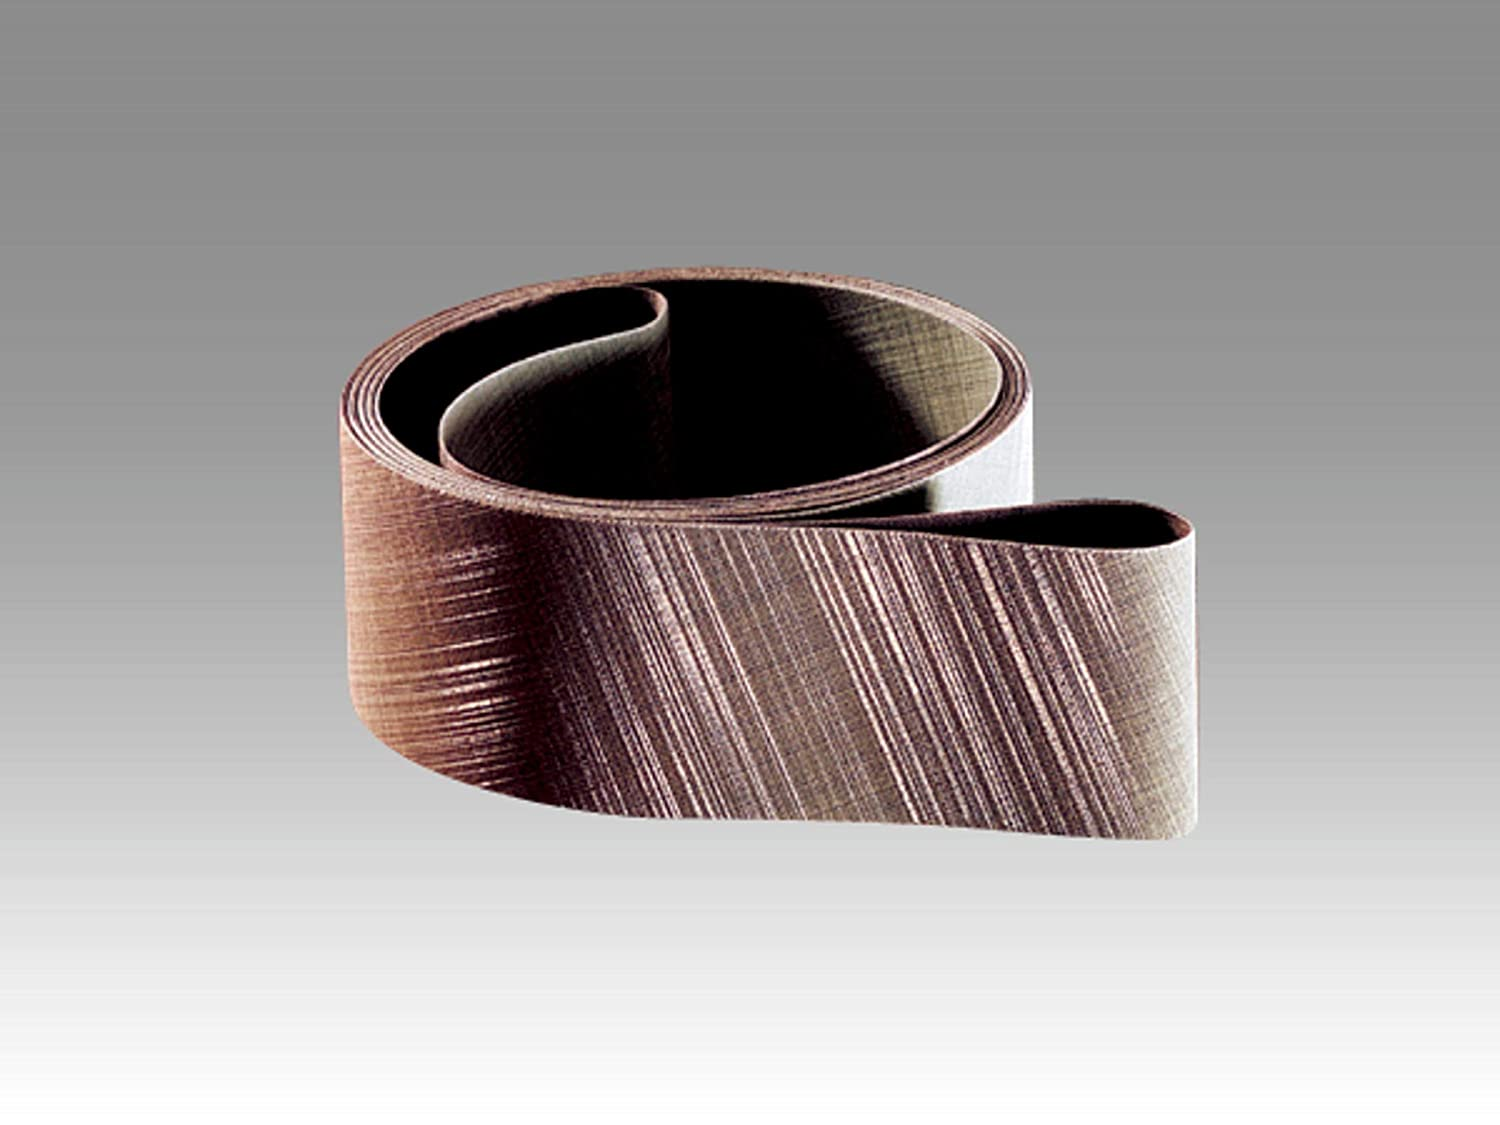 Image of 3M Trizact Cloth Belt 307EA, A45 JE-Weight, 3-1/2 in x 15-1/2 in, Film-lok, Full-Flex Home Improvements